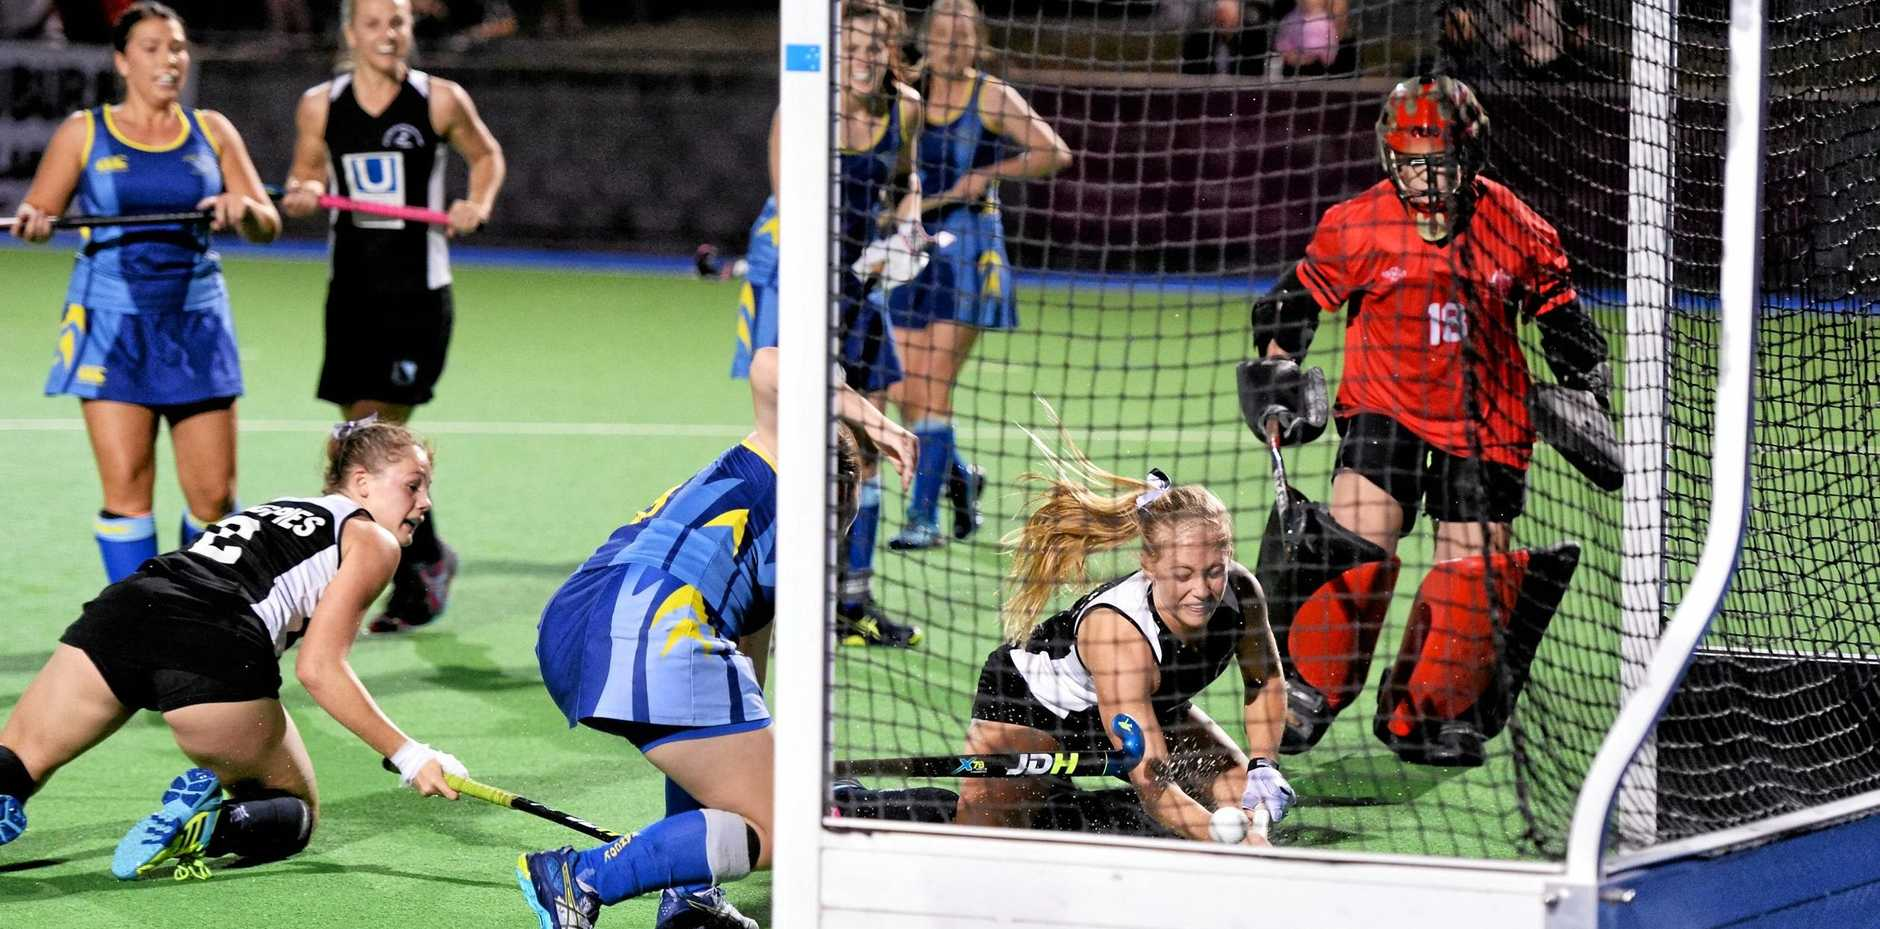 THE WINNING MOMENT: Wests co-captain Eden Jackat ends up in the net after launching herself to score what turned out to be the winning grand final goal.